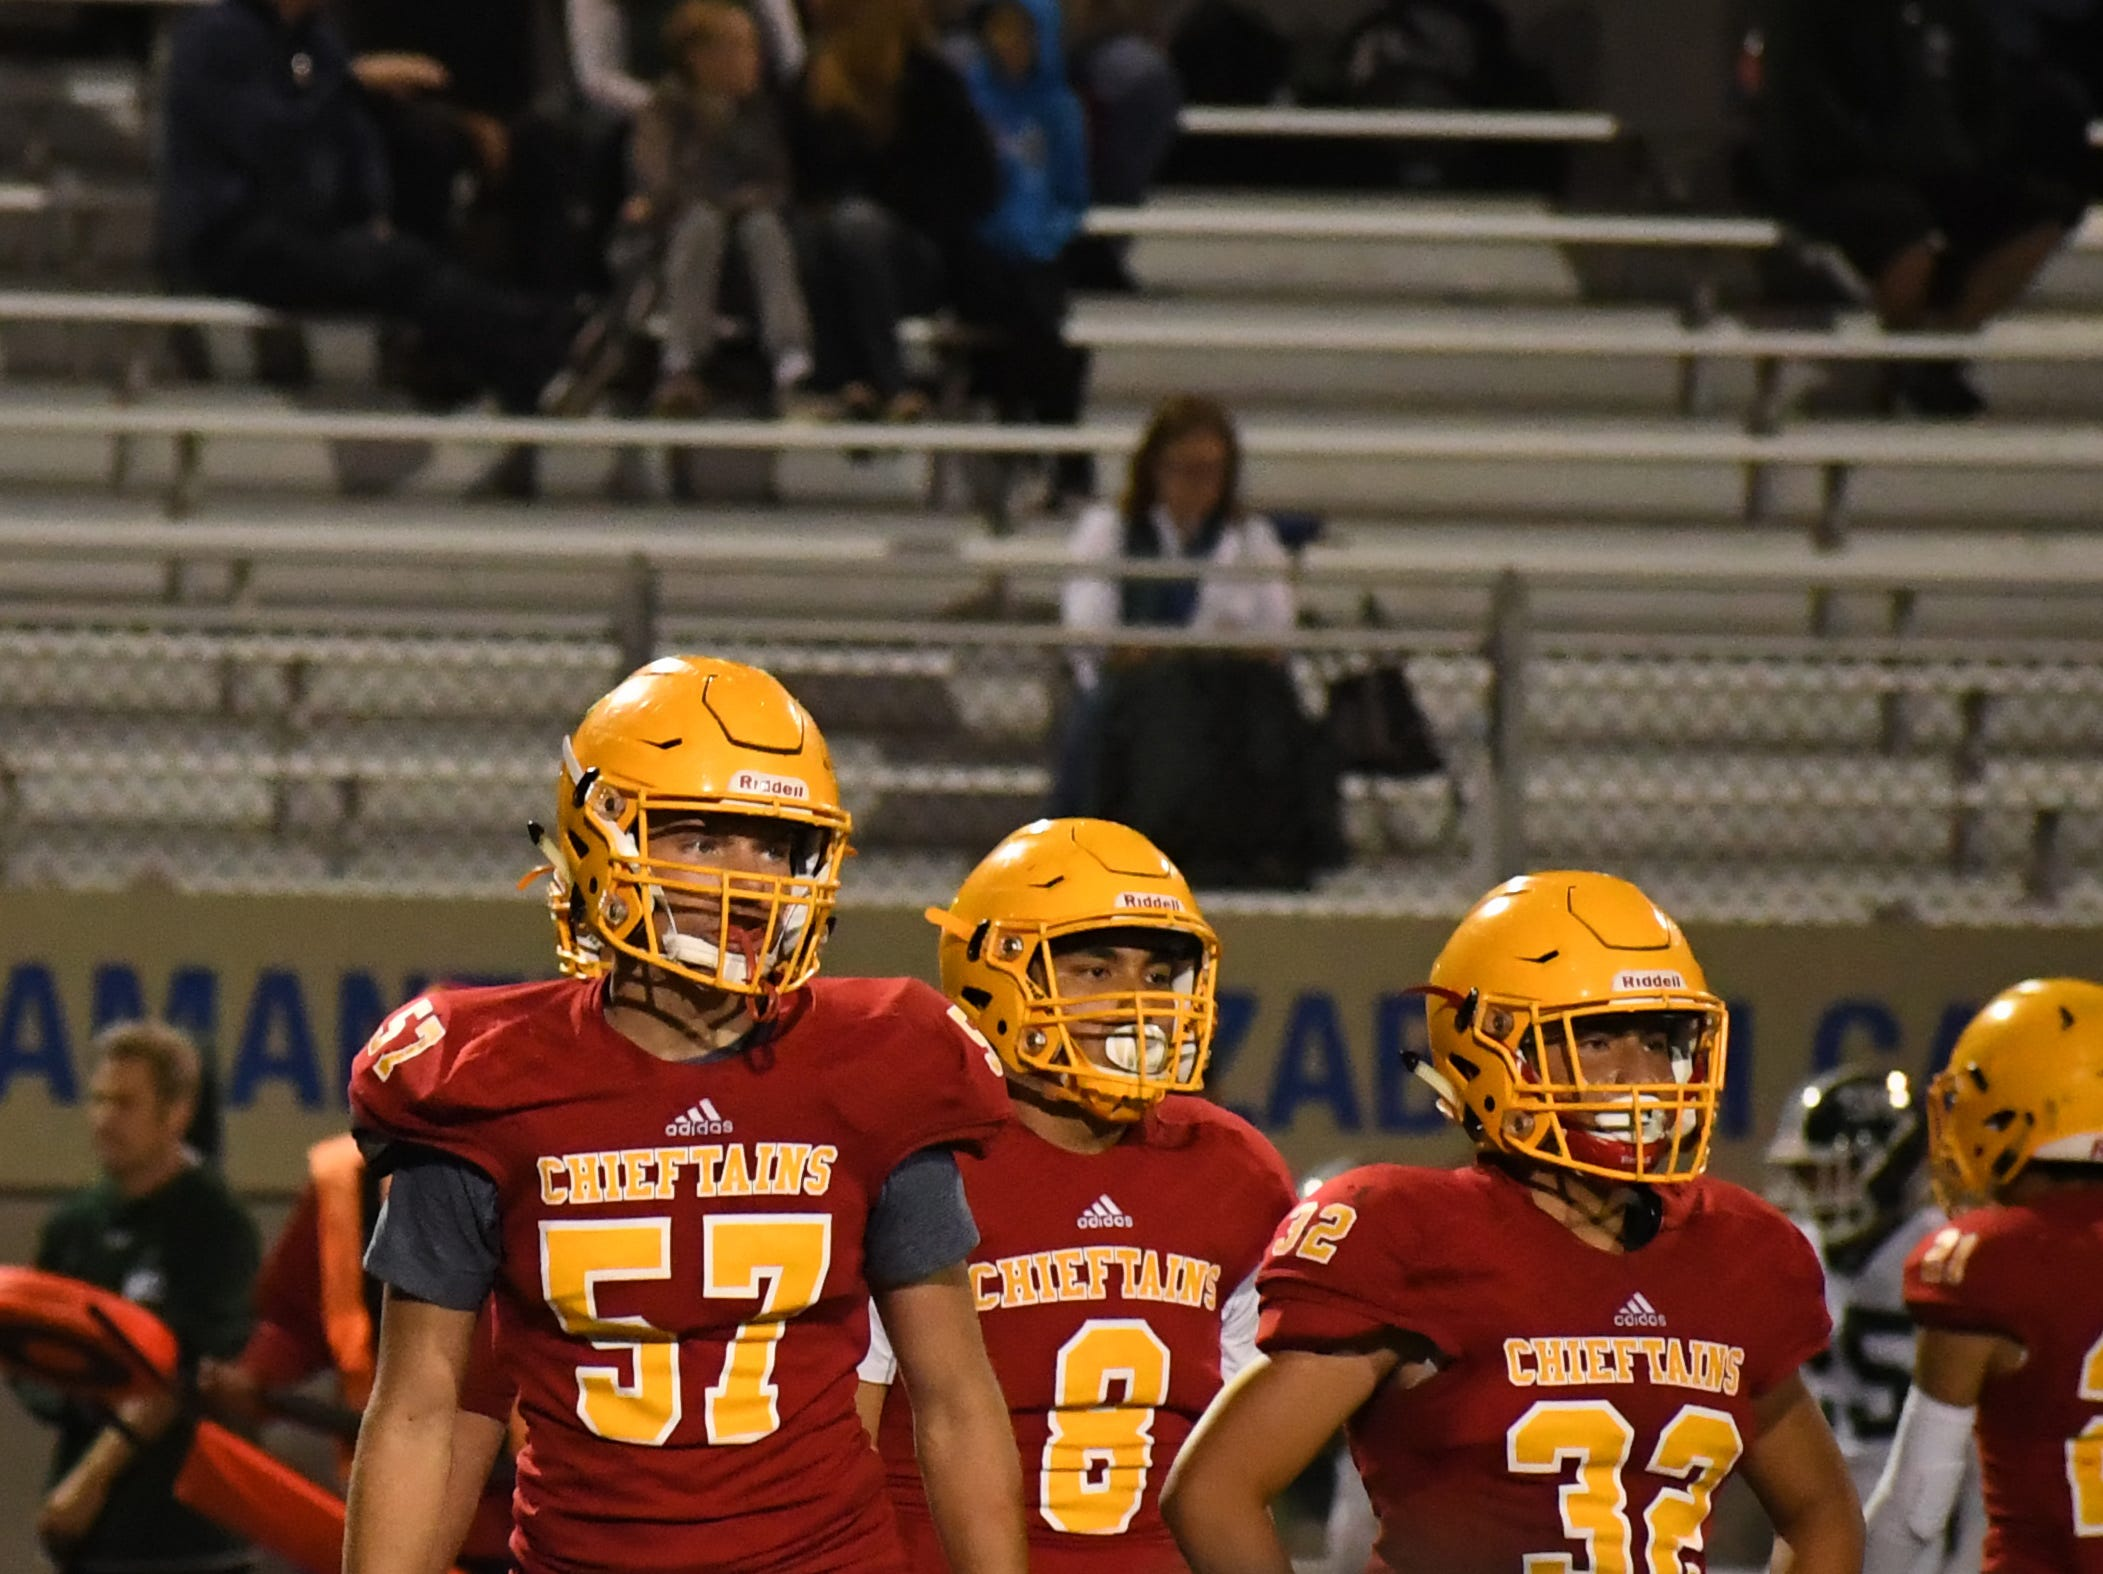 Defenders Dane Golden (57), Matthew Isais (8) and Diego Guajardo (32) look to the sideline during a timeout.